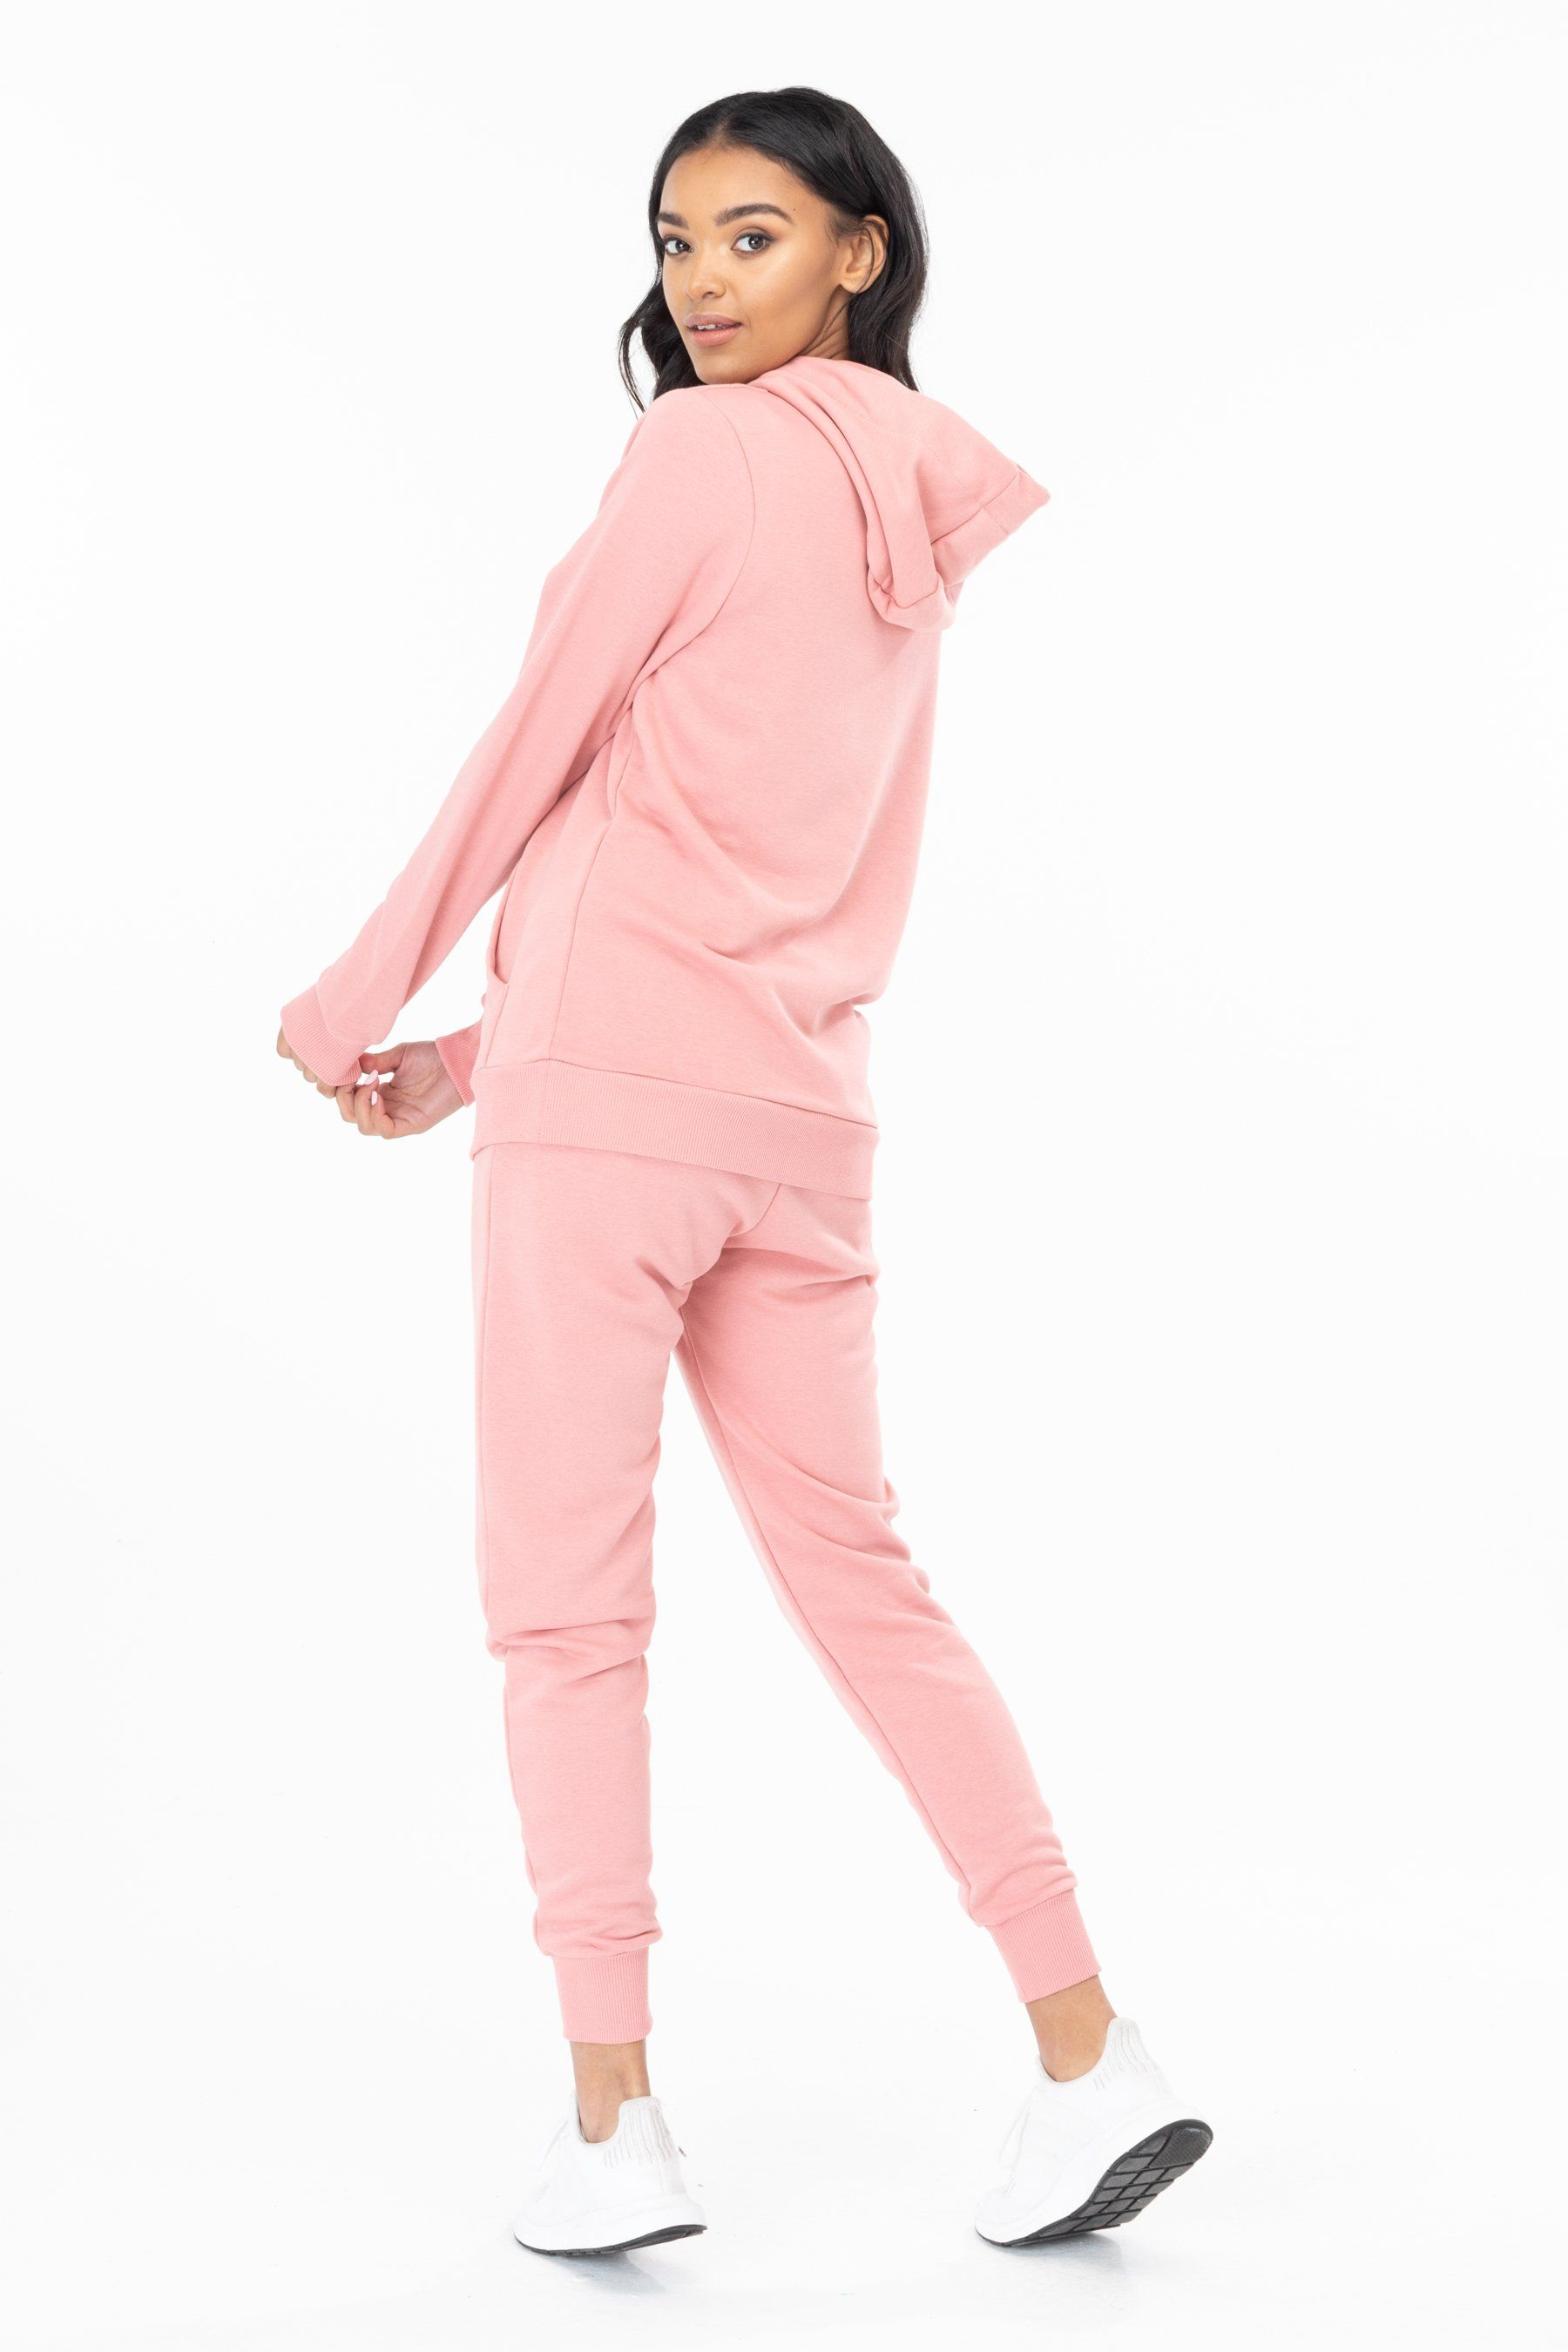 Hype Pink Drawstring Womens Joggers